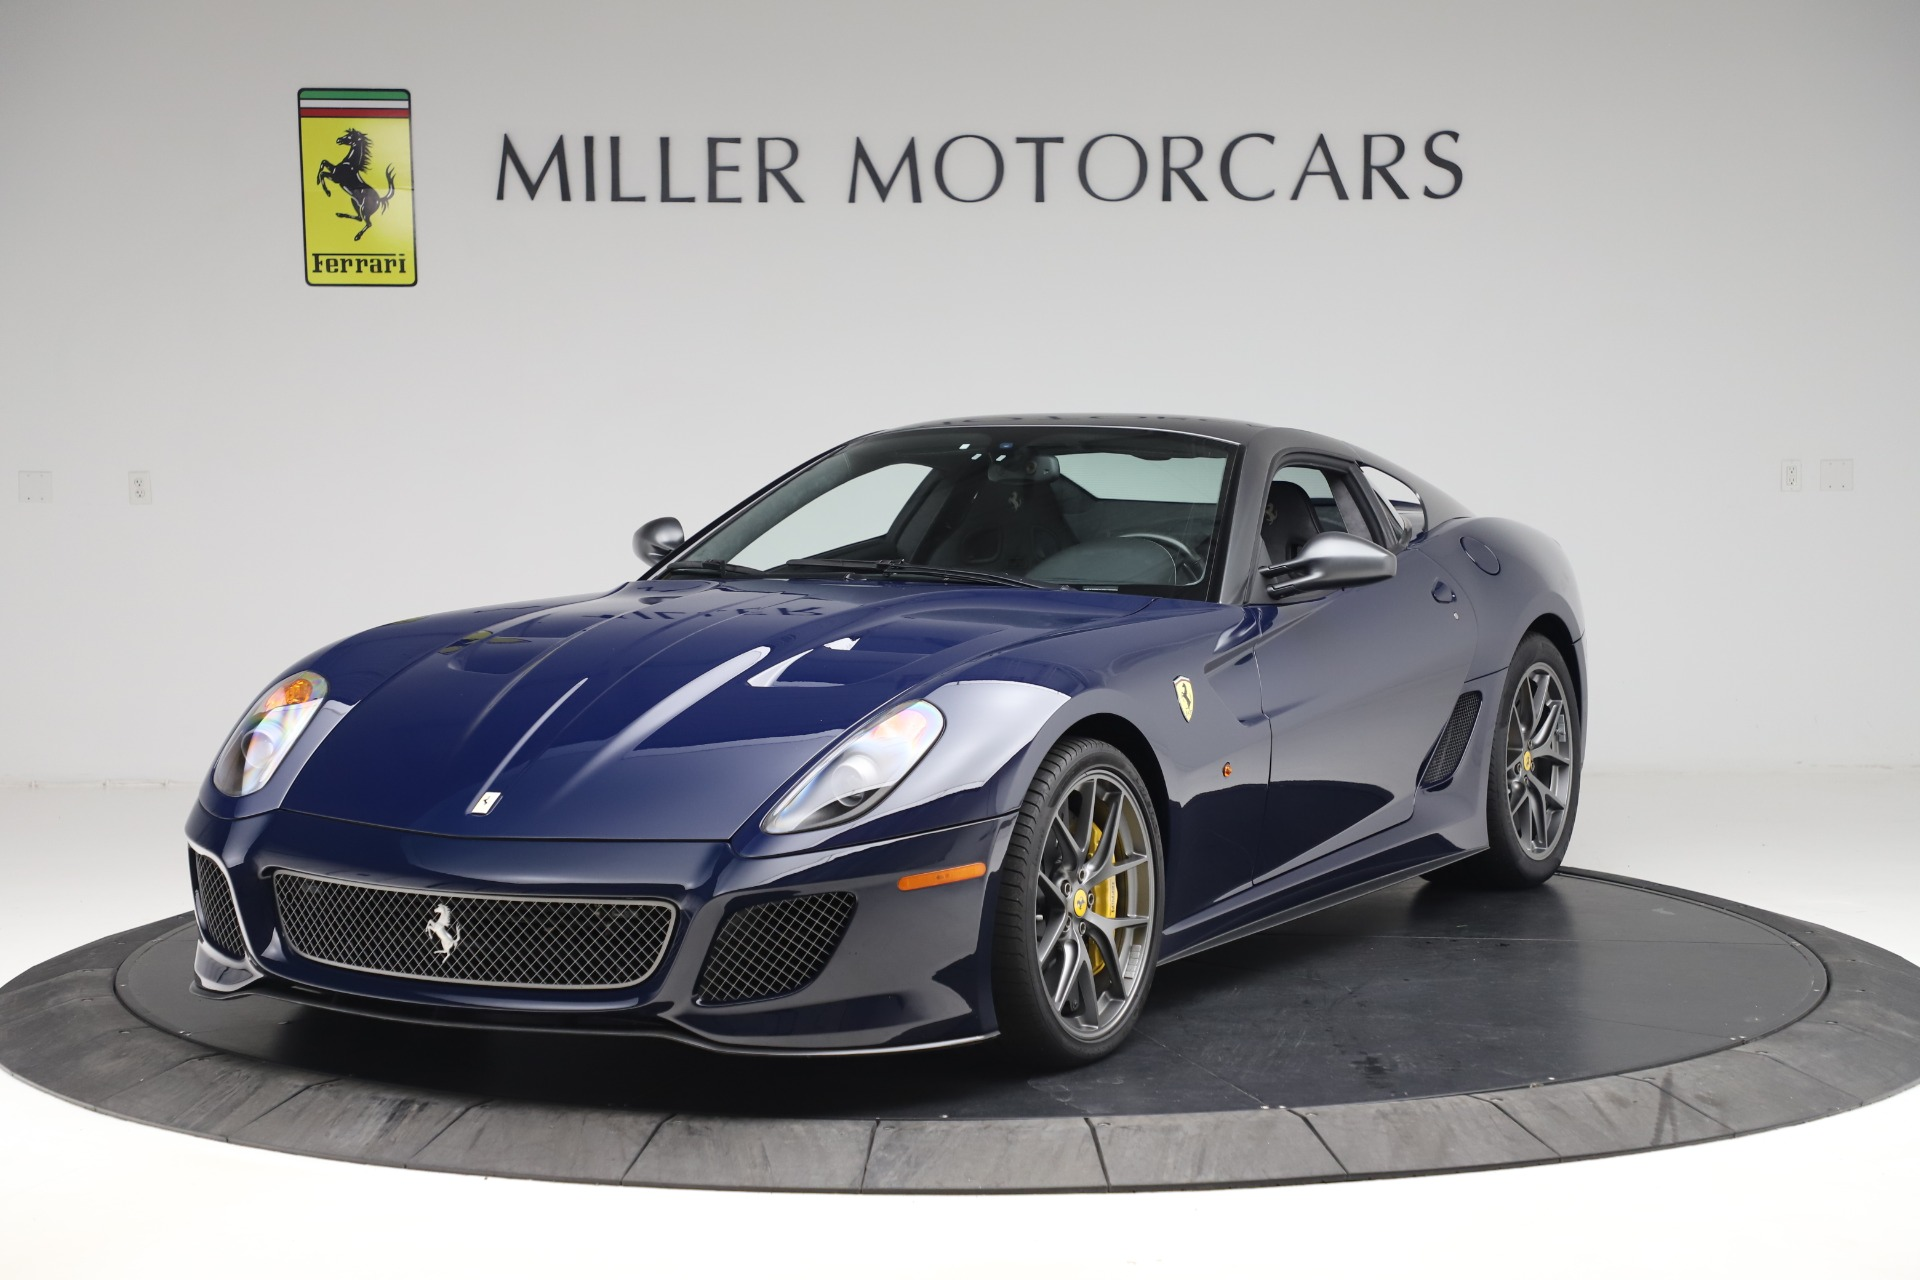 Used 2011 Ferrari 599 GTO for sale $565,900 at Bugatti of Greenwich in Greenwich CT 06830 1